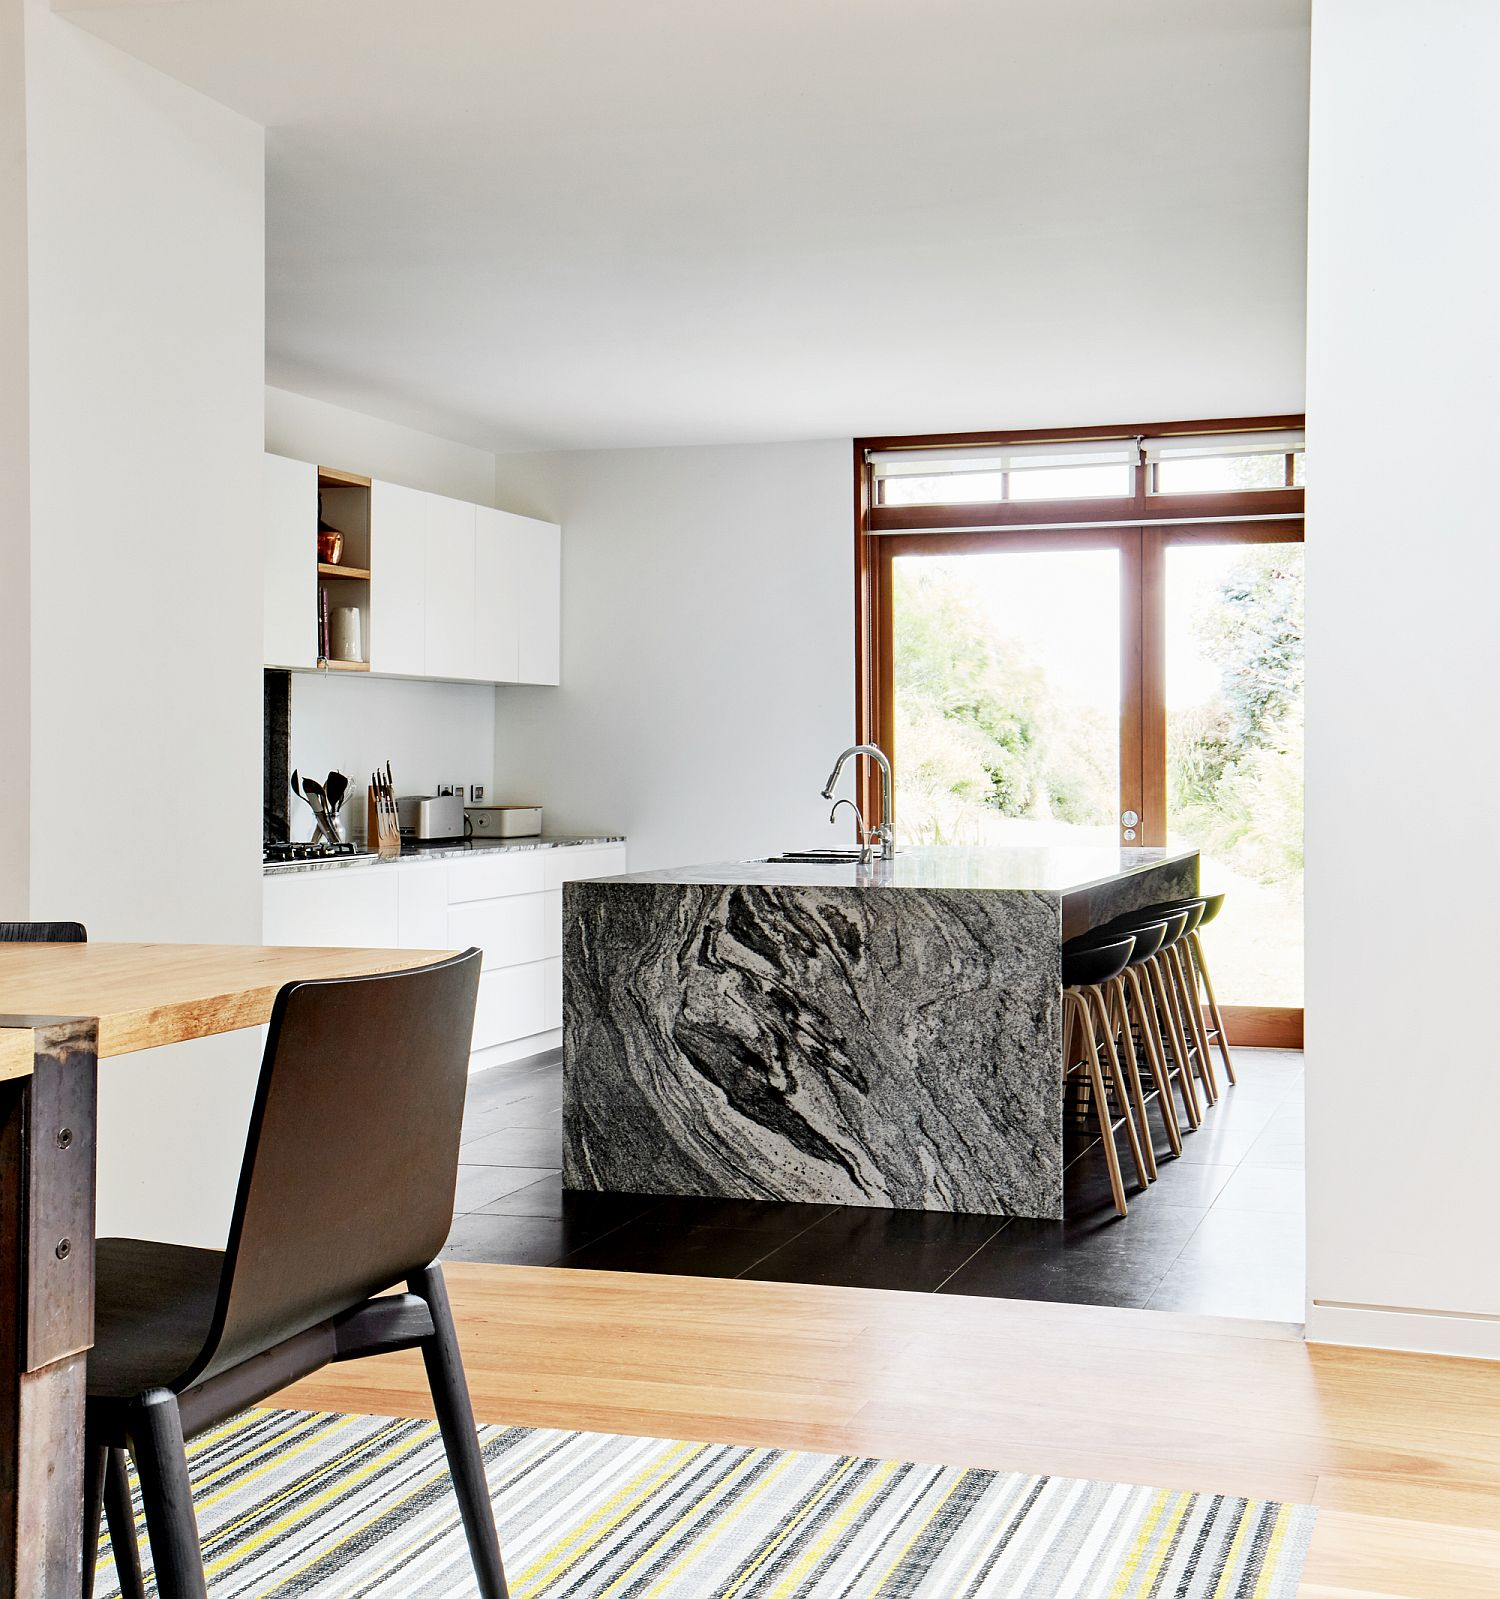 Landscape-outside-brings-ample-natural-light-into-the-kitchen-with-stunning-stone-island